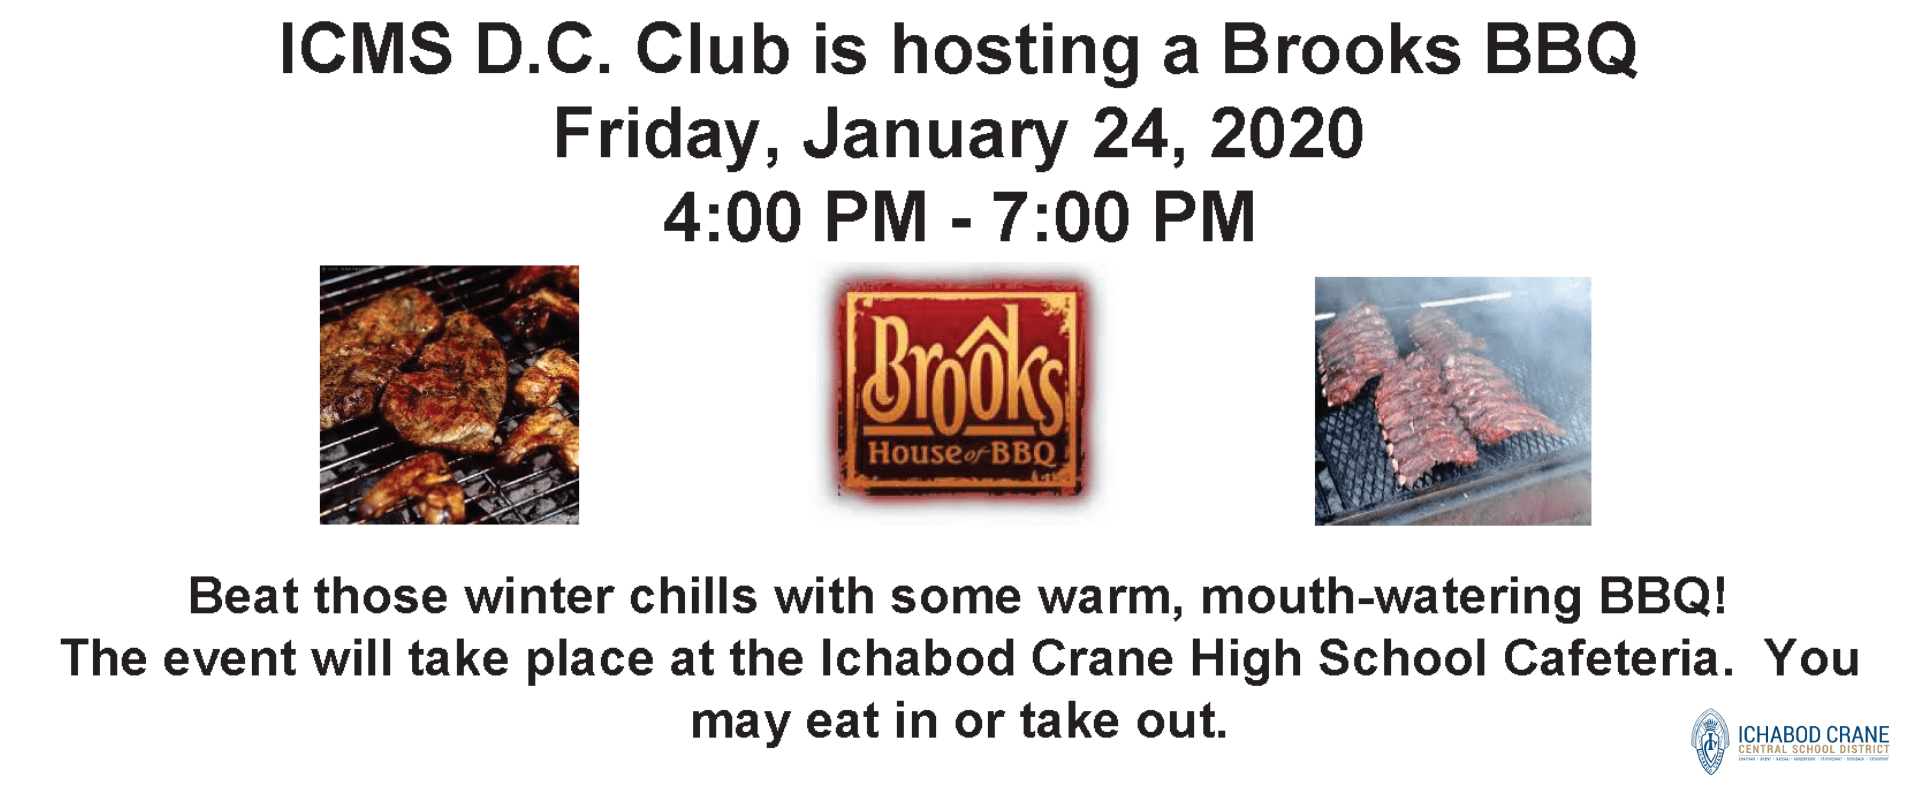 DC Club Brooks Barbecue Fundraiser January 24